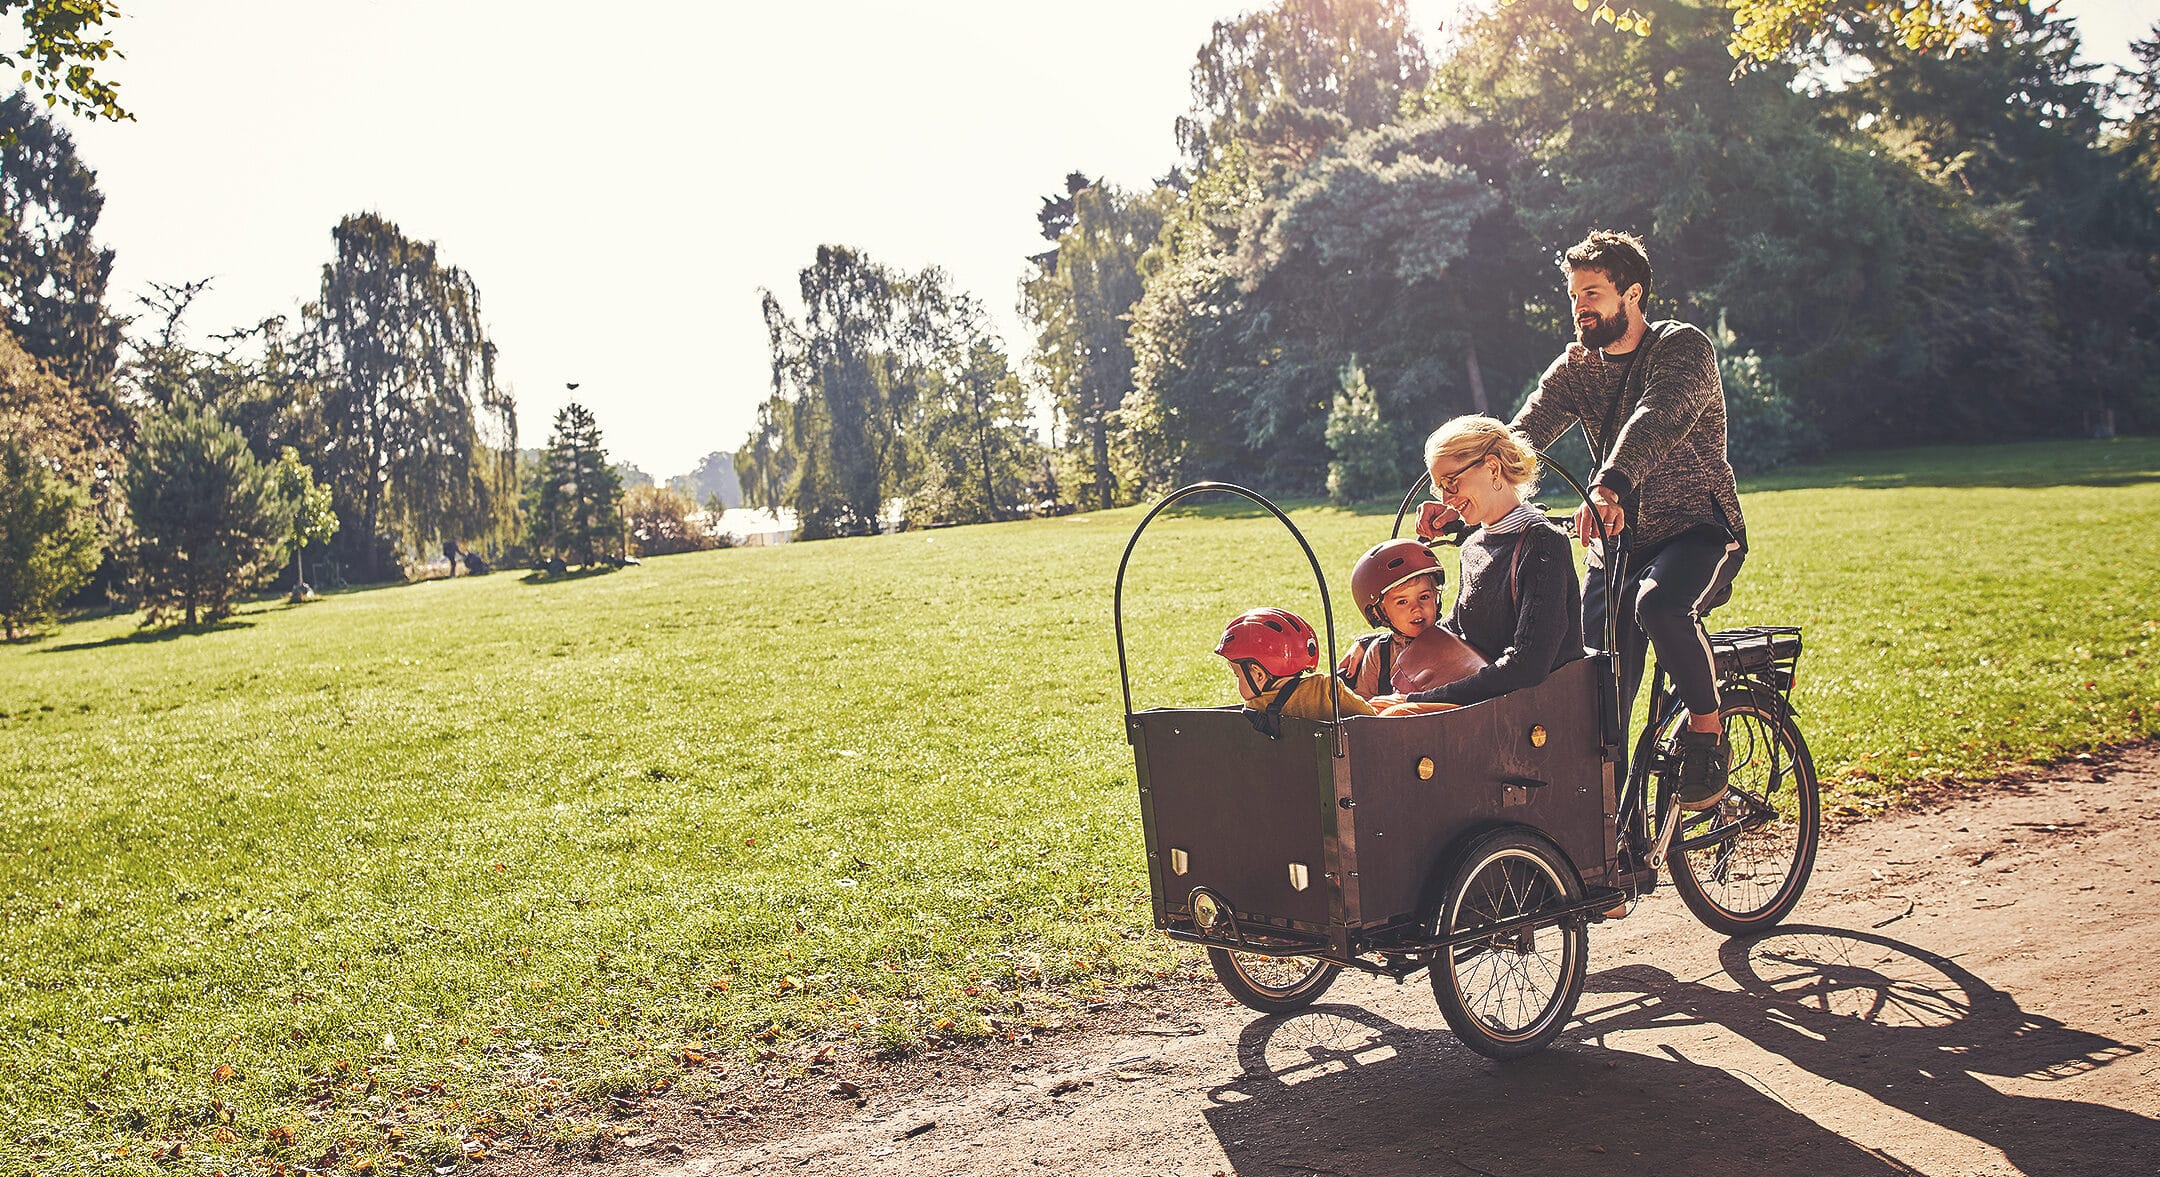 A young family riding a cargo bicycle through a park after purchasing their first home.